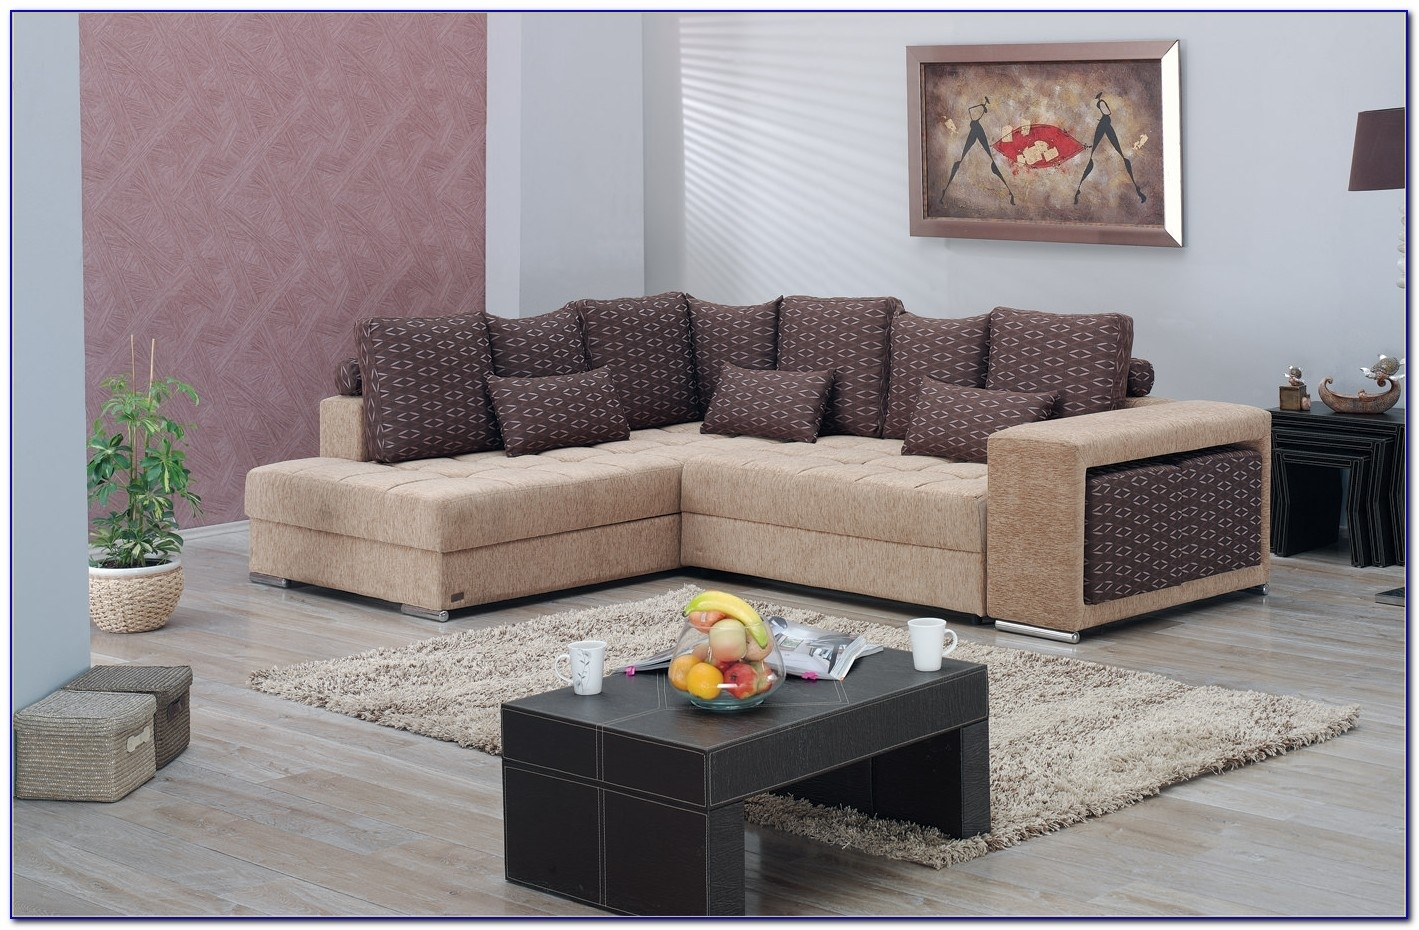 Fancy Kmart Sectional Sofa 82 For Sectional Sofas Ct With Kmart For Kmart Sectional Sofas (View 9 of 10)